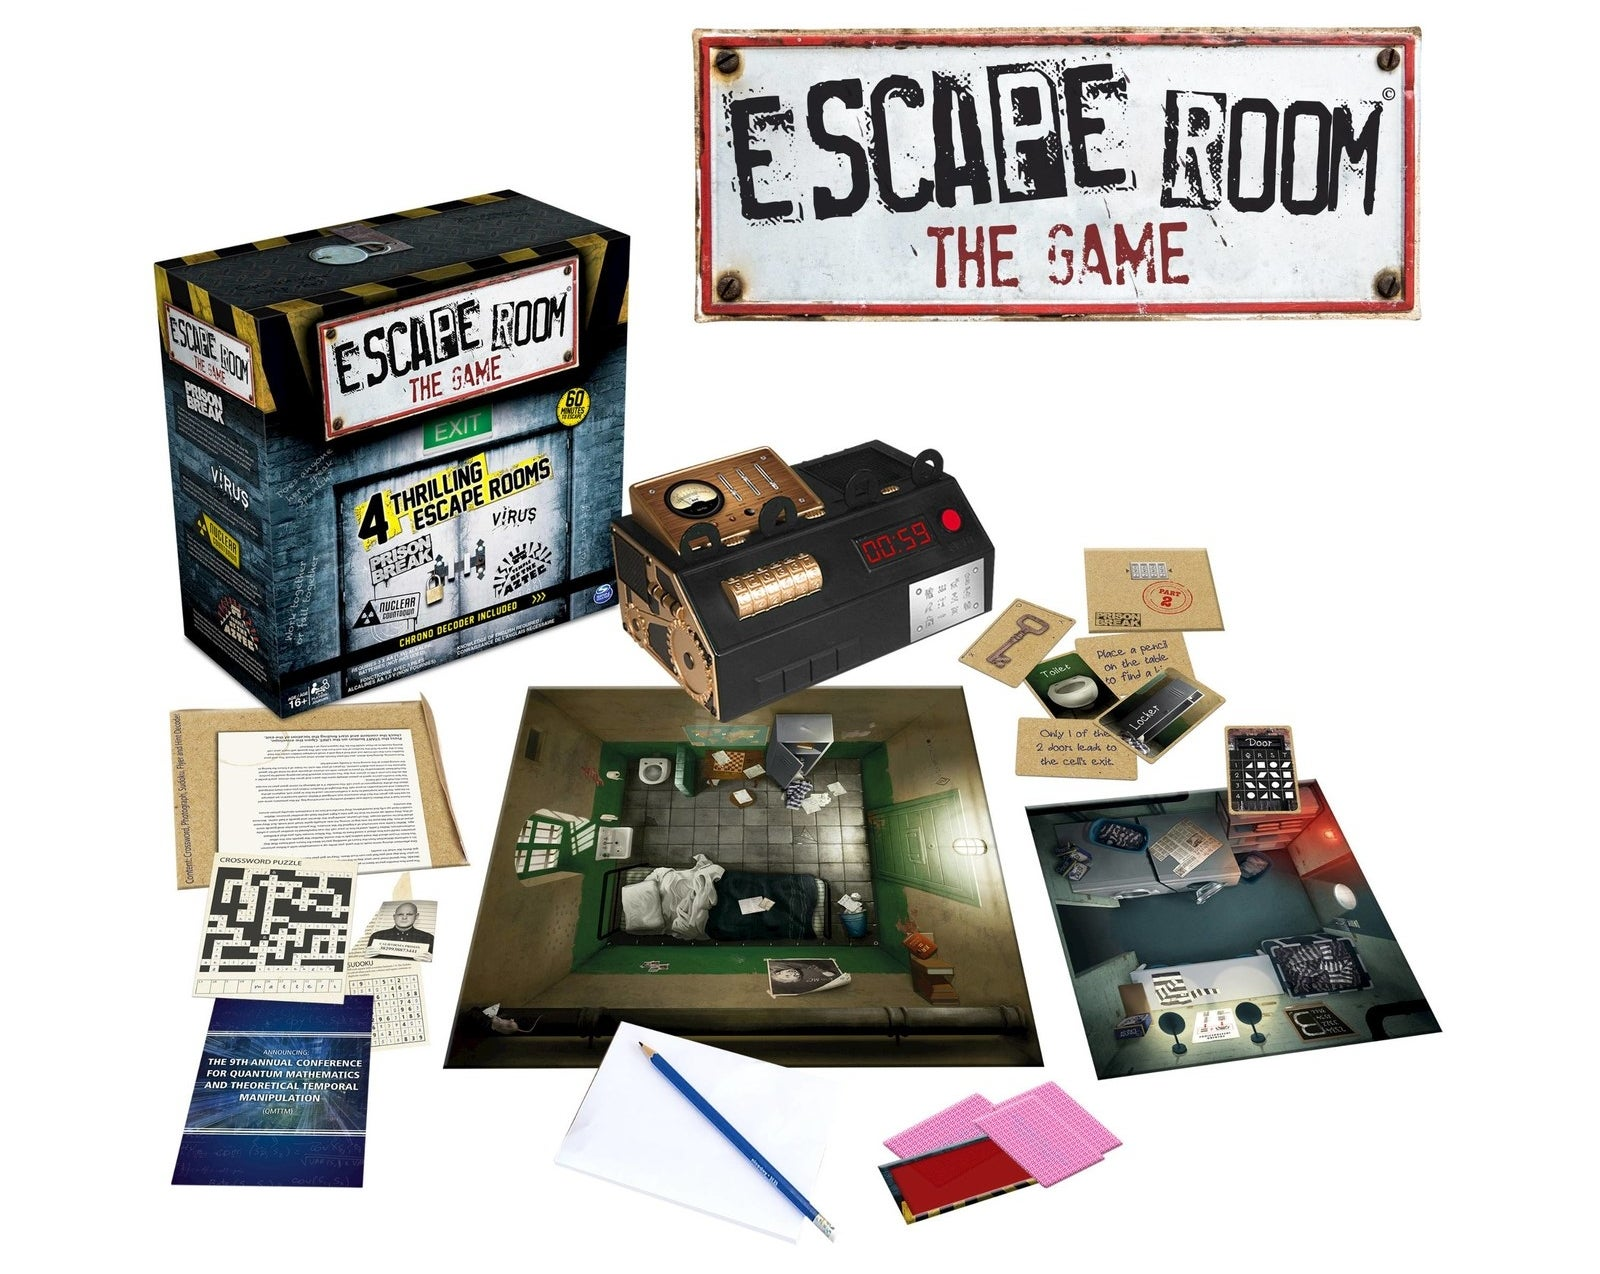 Escape The Room board game with cards and game pieces displayed